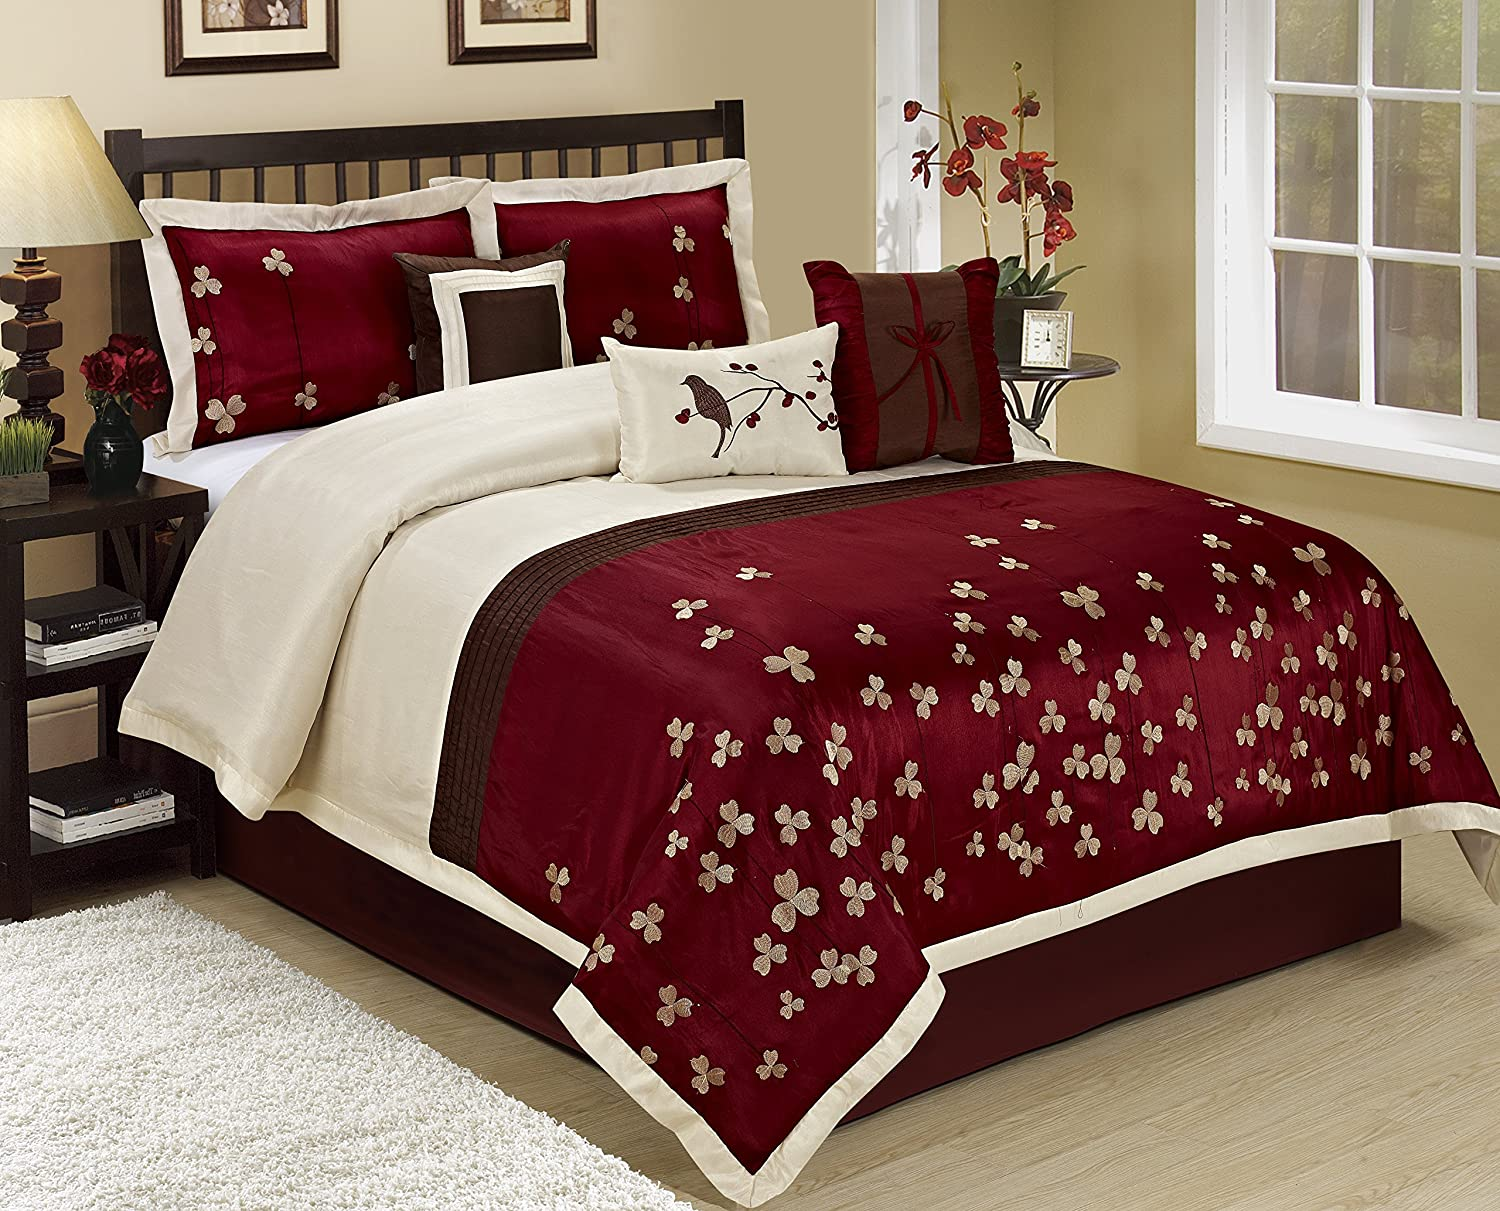 Burgundy & Black Bedding Sets Sale